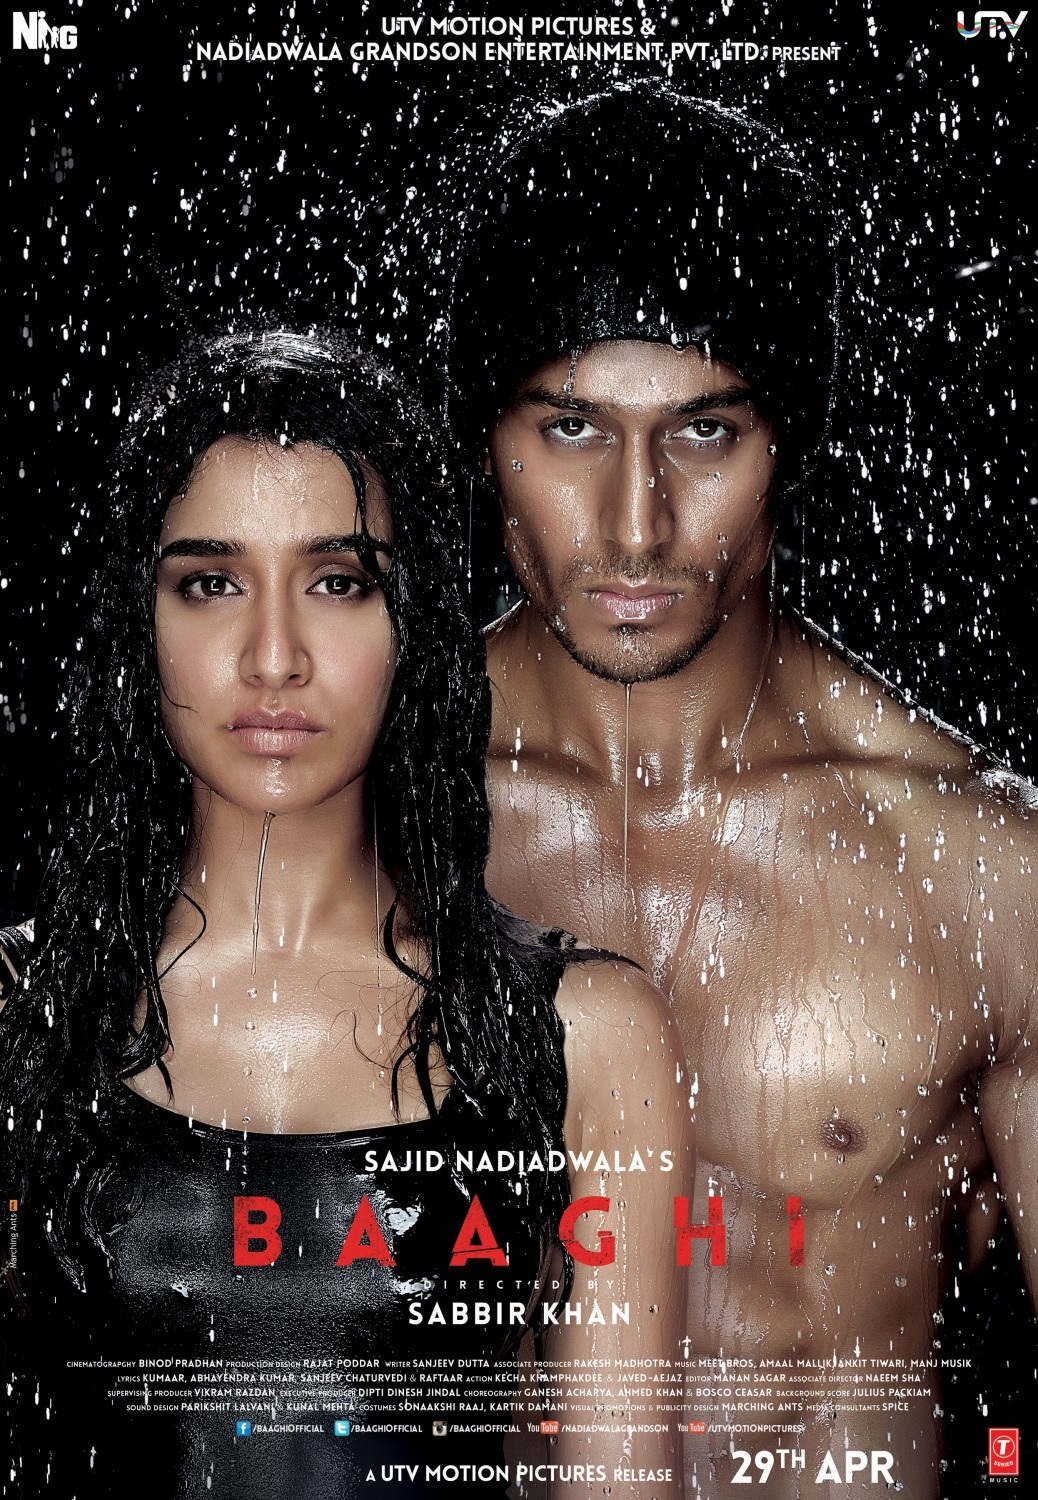 Baaghi Movie Dialogues - Tiger Shroff And Shraddha Kapoor - Desktop Wallpaper